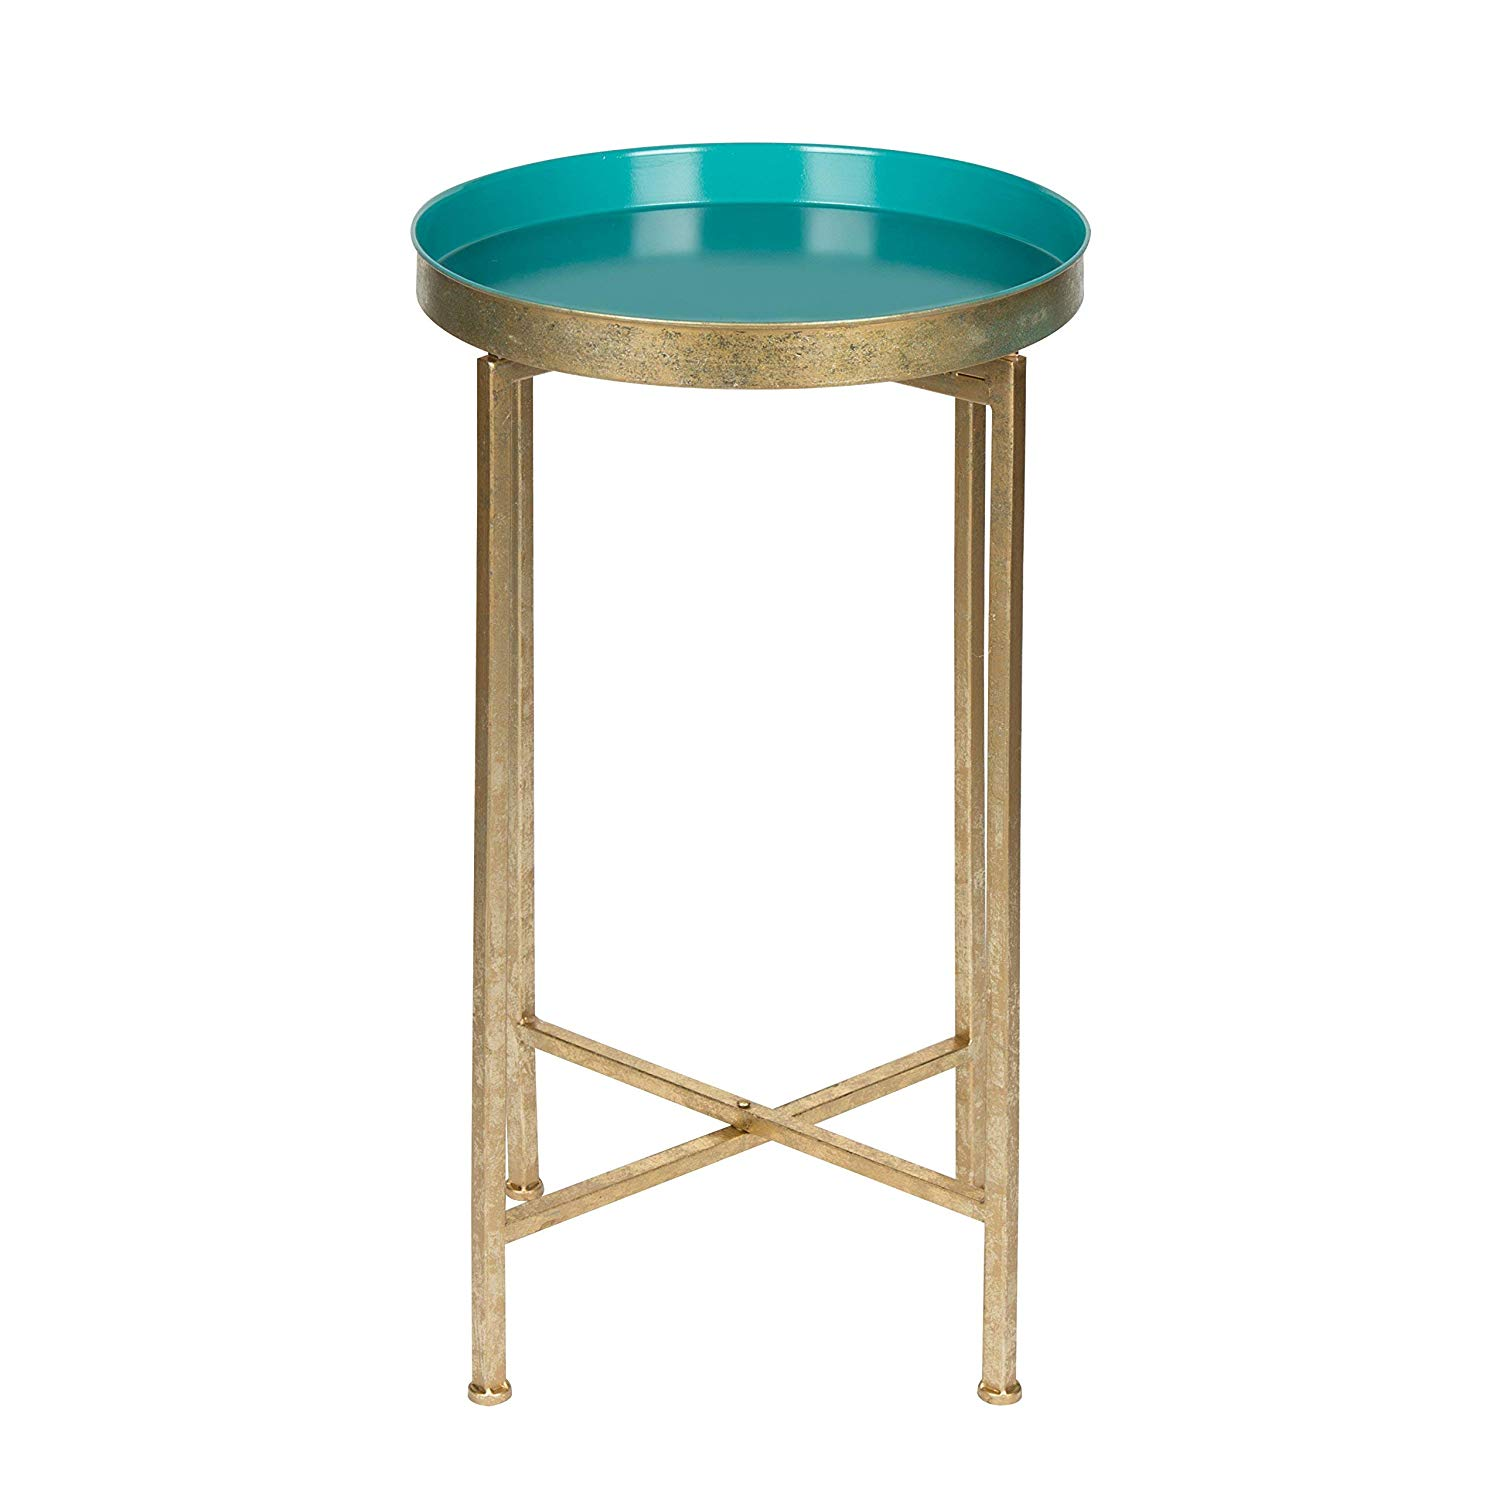 kate and laurel celia round metal foldable tray accent gold table teal kitchen dining cocktail linens cover designs iron coffee legs storage bookshelf small entryway cabinet oval